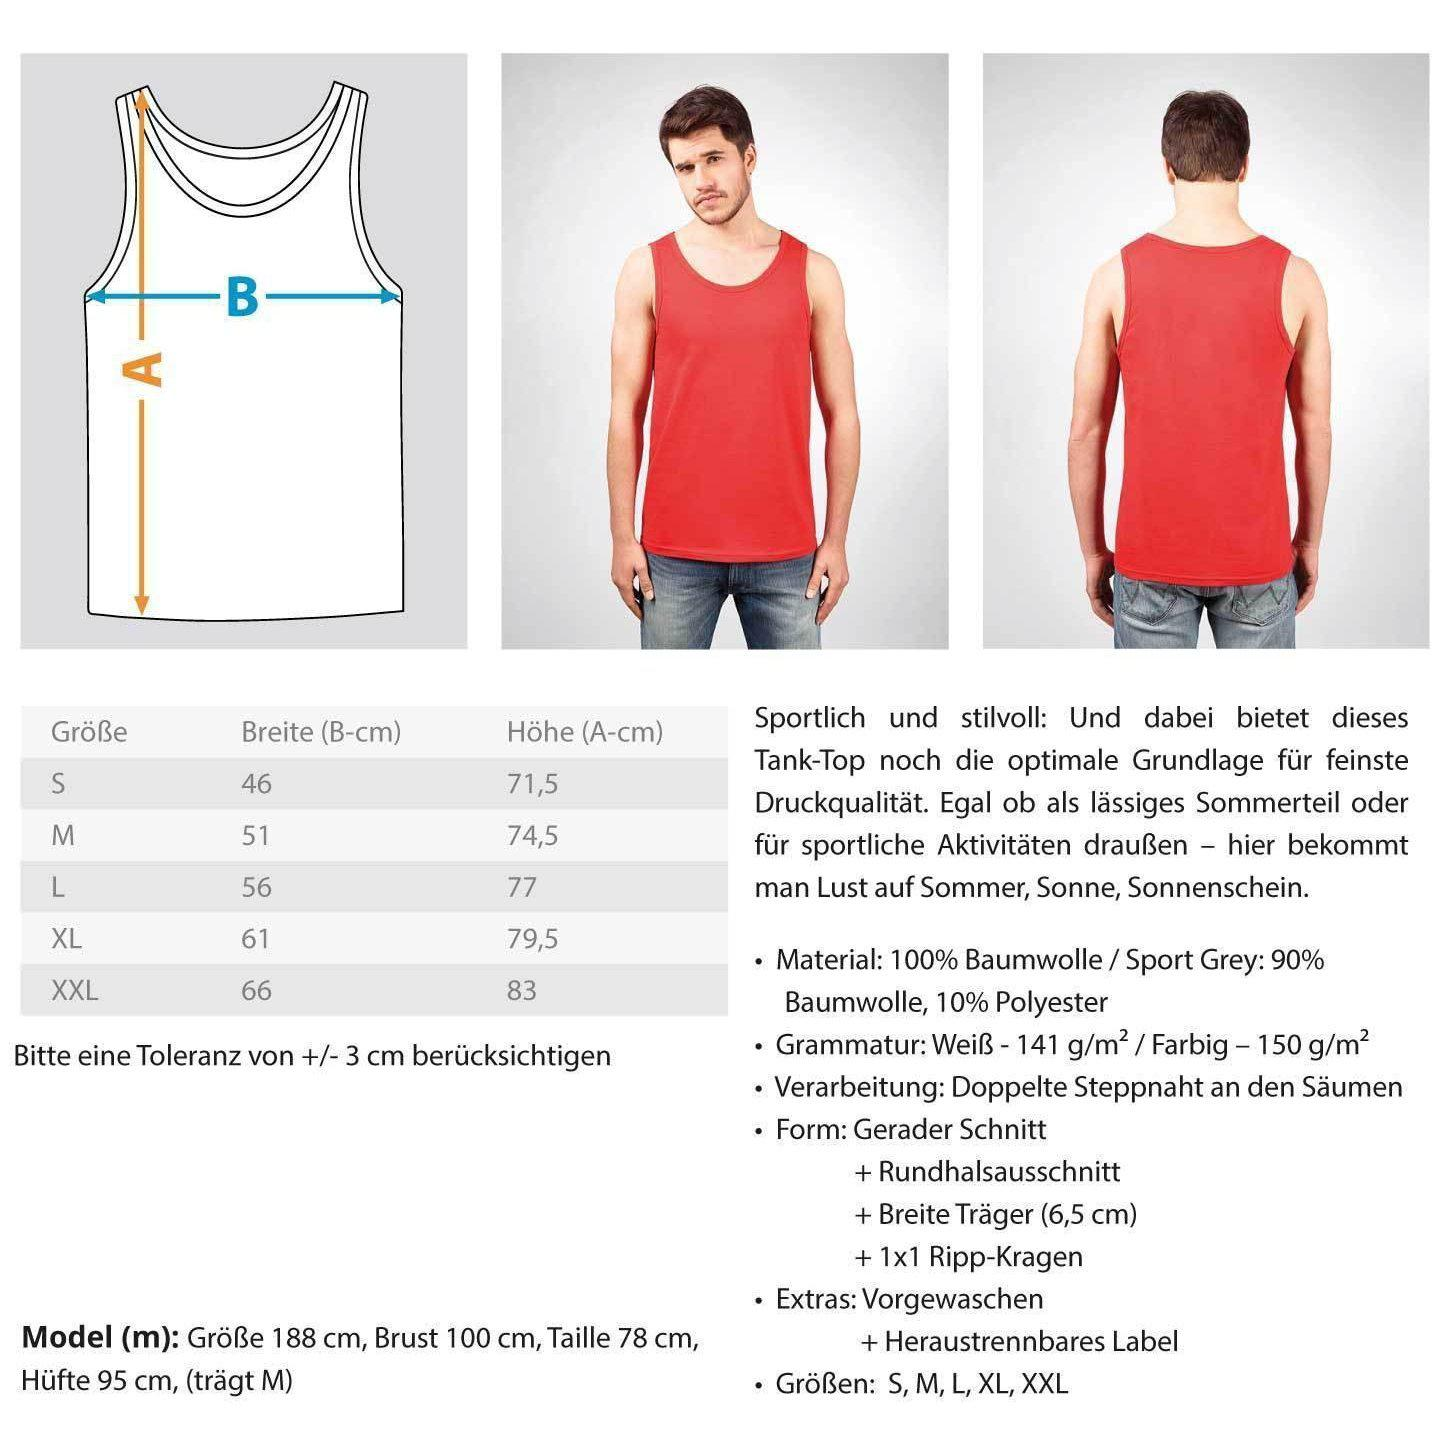 Techno Kreuz - Rave On!® - Herren Tanktop Herren Tank-Top - Rave On!® der Club & Techno Szene Shop für Coole Junge Mode Streetwear Style & Fashion Outfits + Sexy Festival 420 Stuff